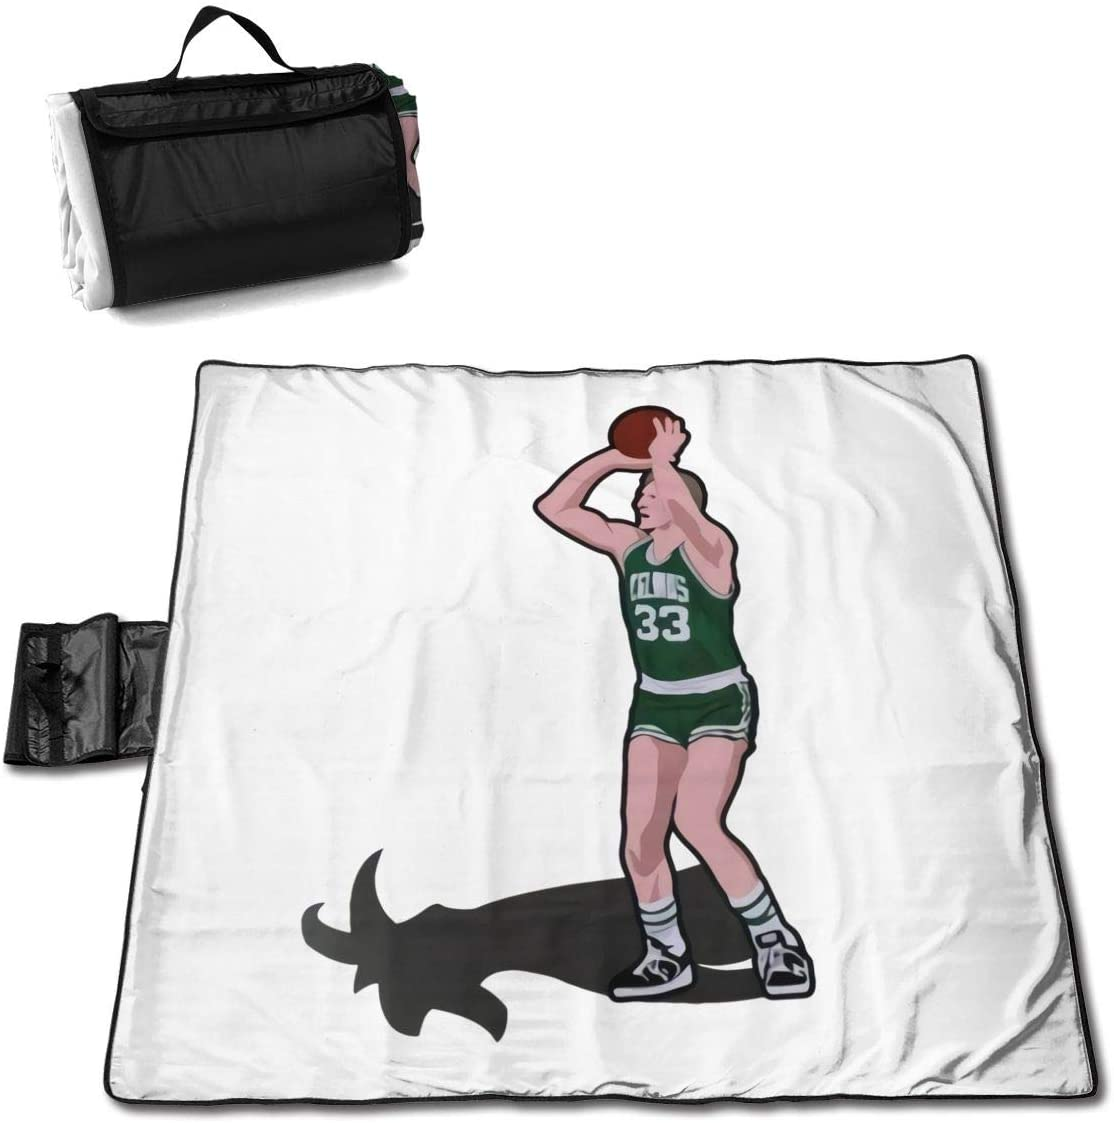 Zcm Goats Basketball Player Portable Printed Picnic Blanket Waterproof 59x57(in)